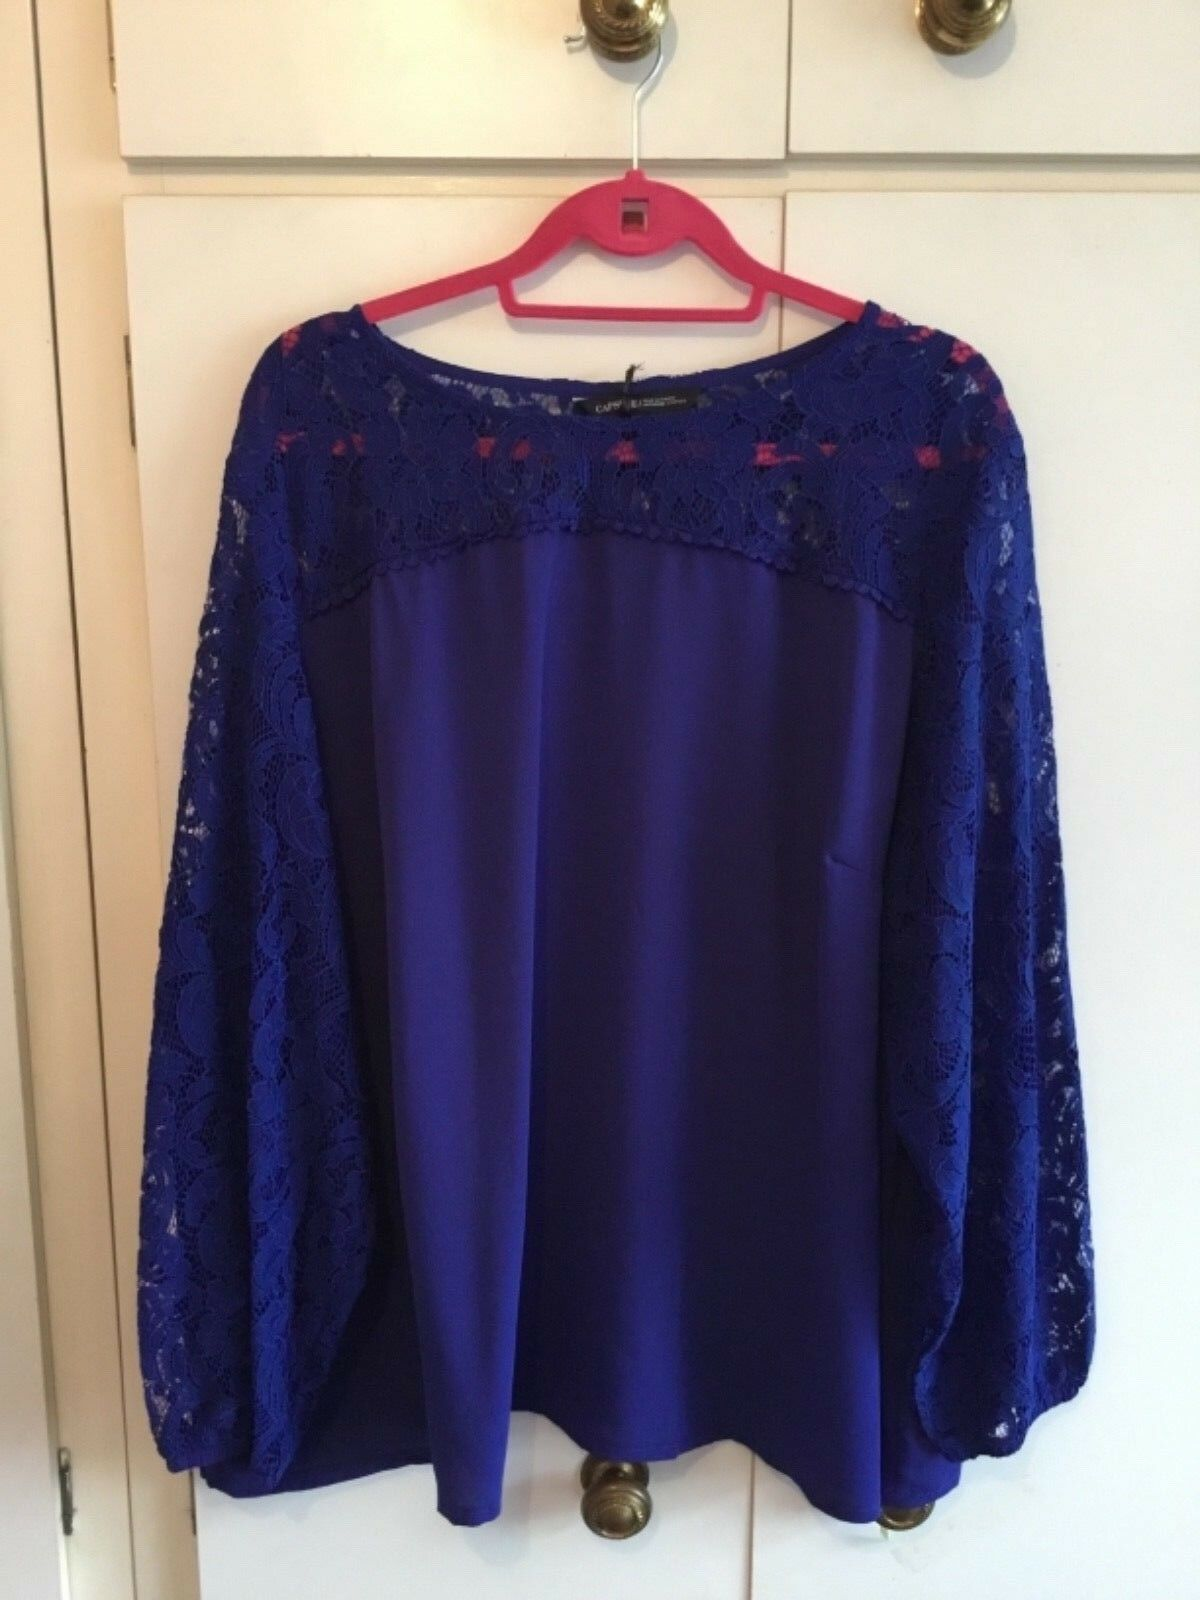 Simply b capsule royal bluee top with lace yoke and sleeves size 30 bnwot